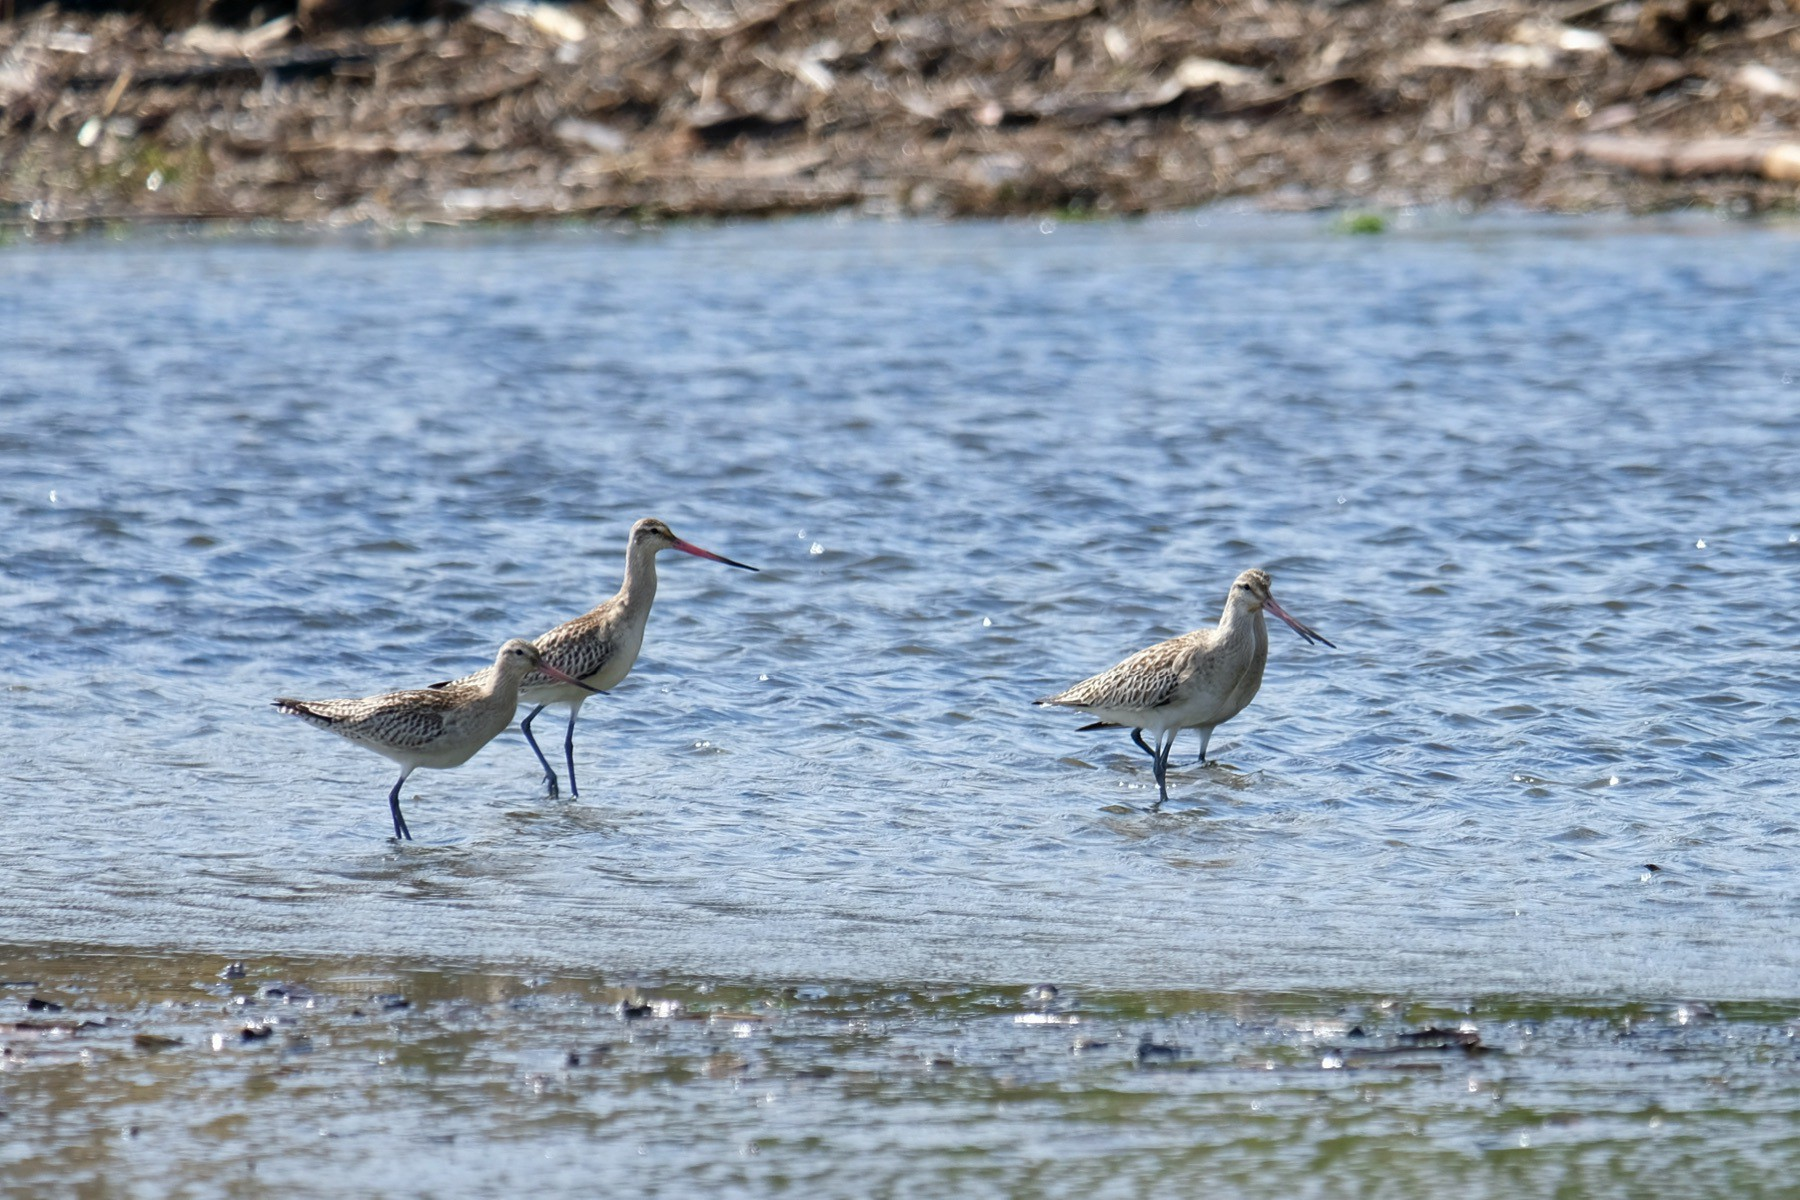 Four godwits wading in the estuary.